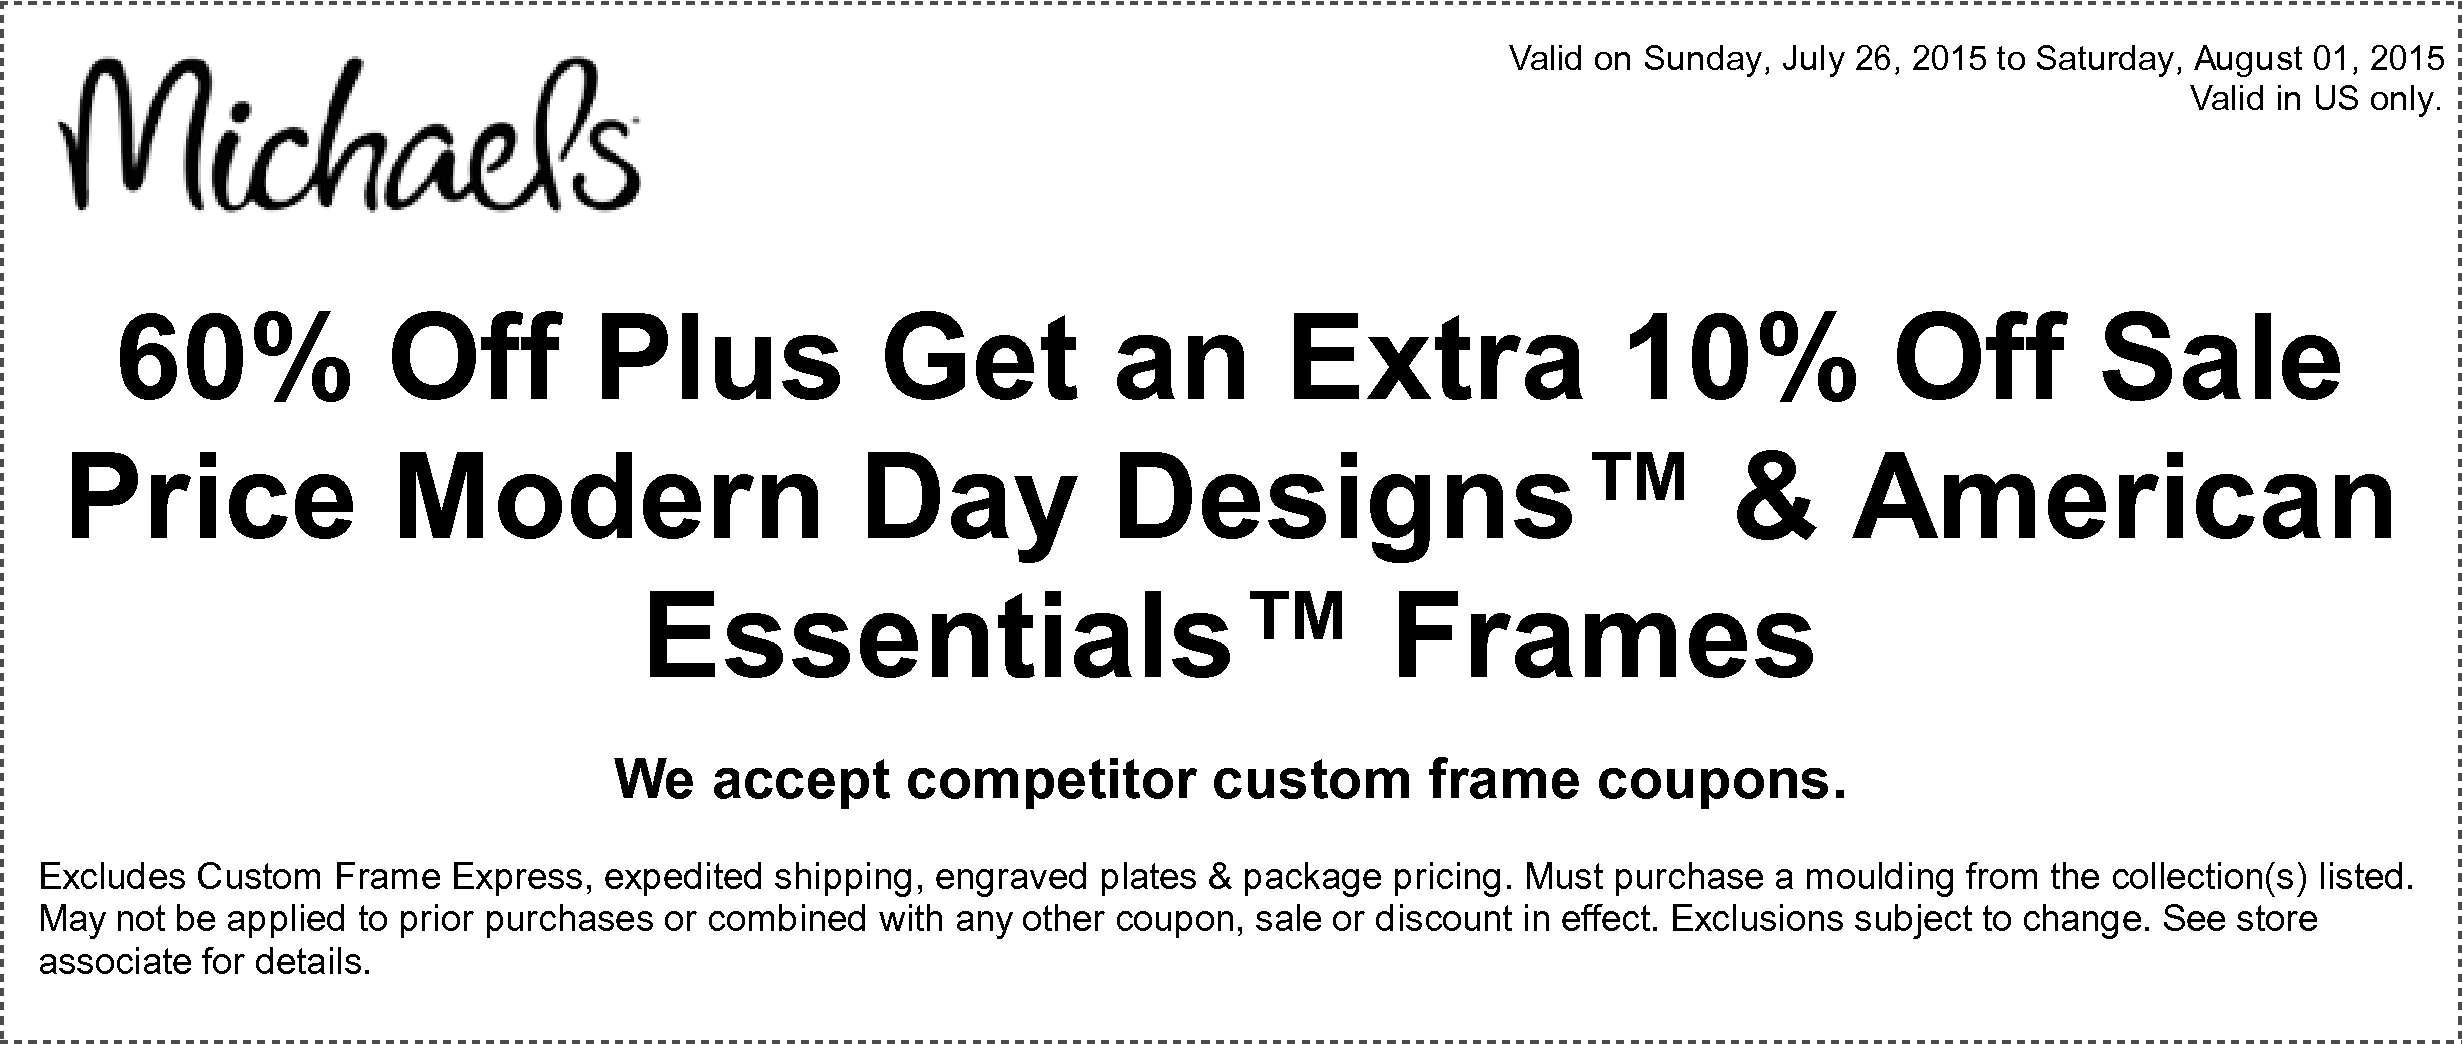 Perfect American Frame Coupon Images - Ideas de Marcos - lamegapromo ...